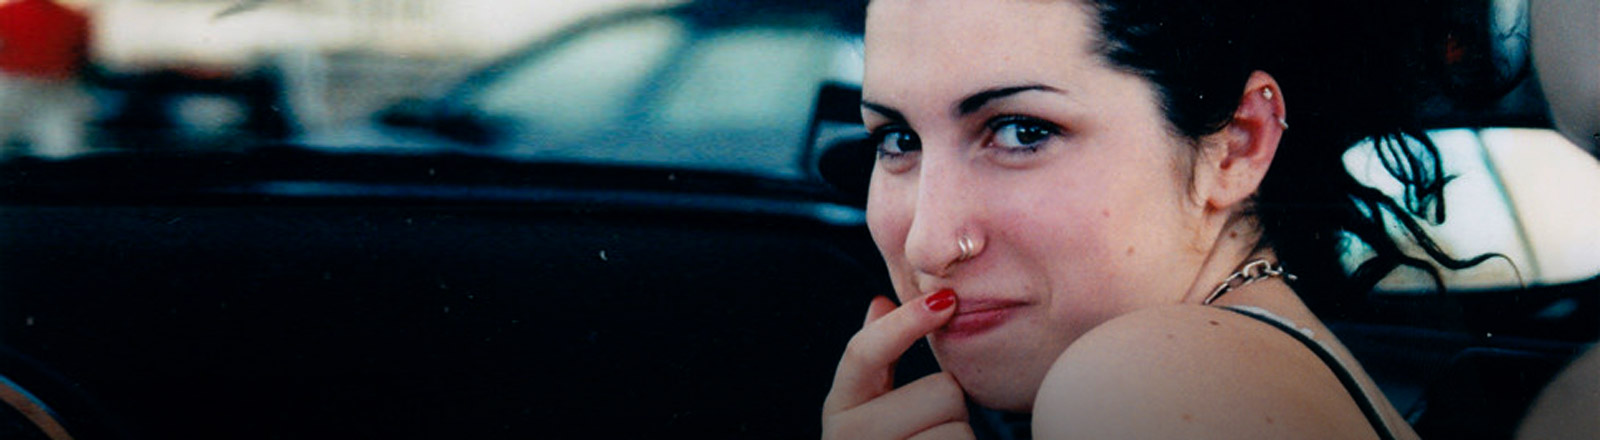 Amy Winehouse als Teenager